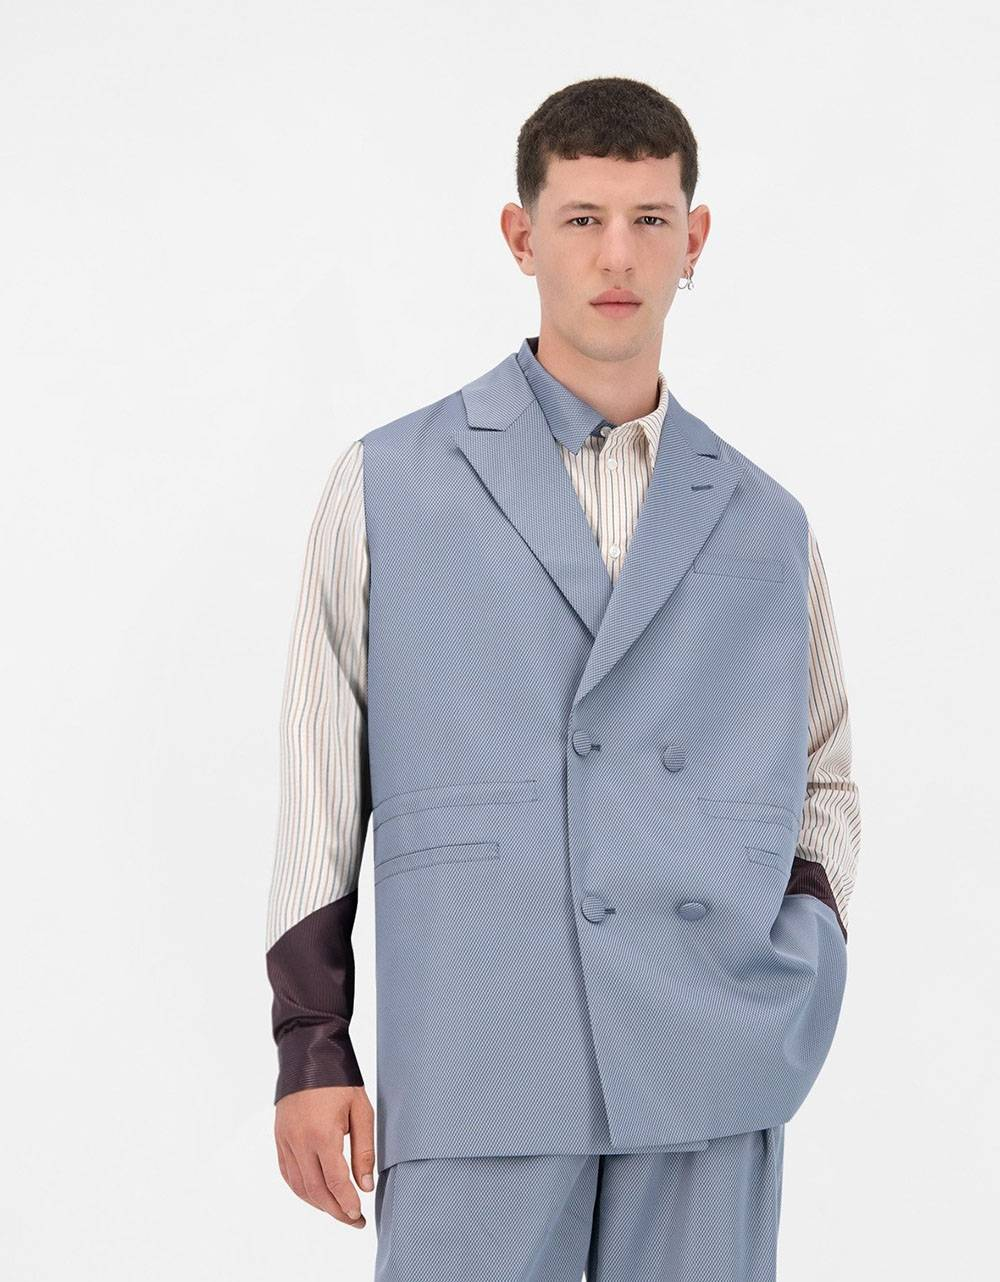 Daily Paper Jether vest - greyblue DAILY PAPER Jacket 131,15€